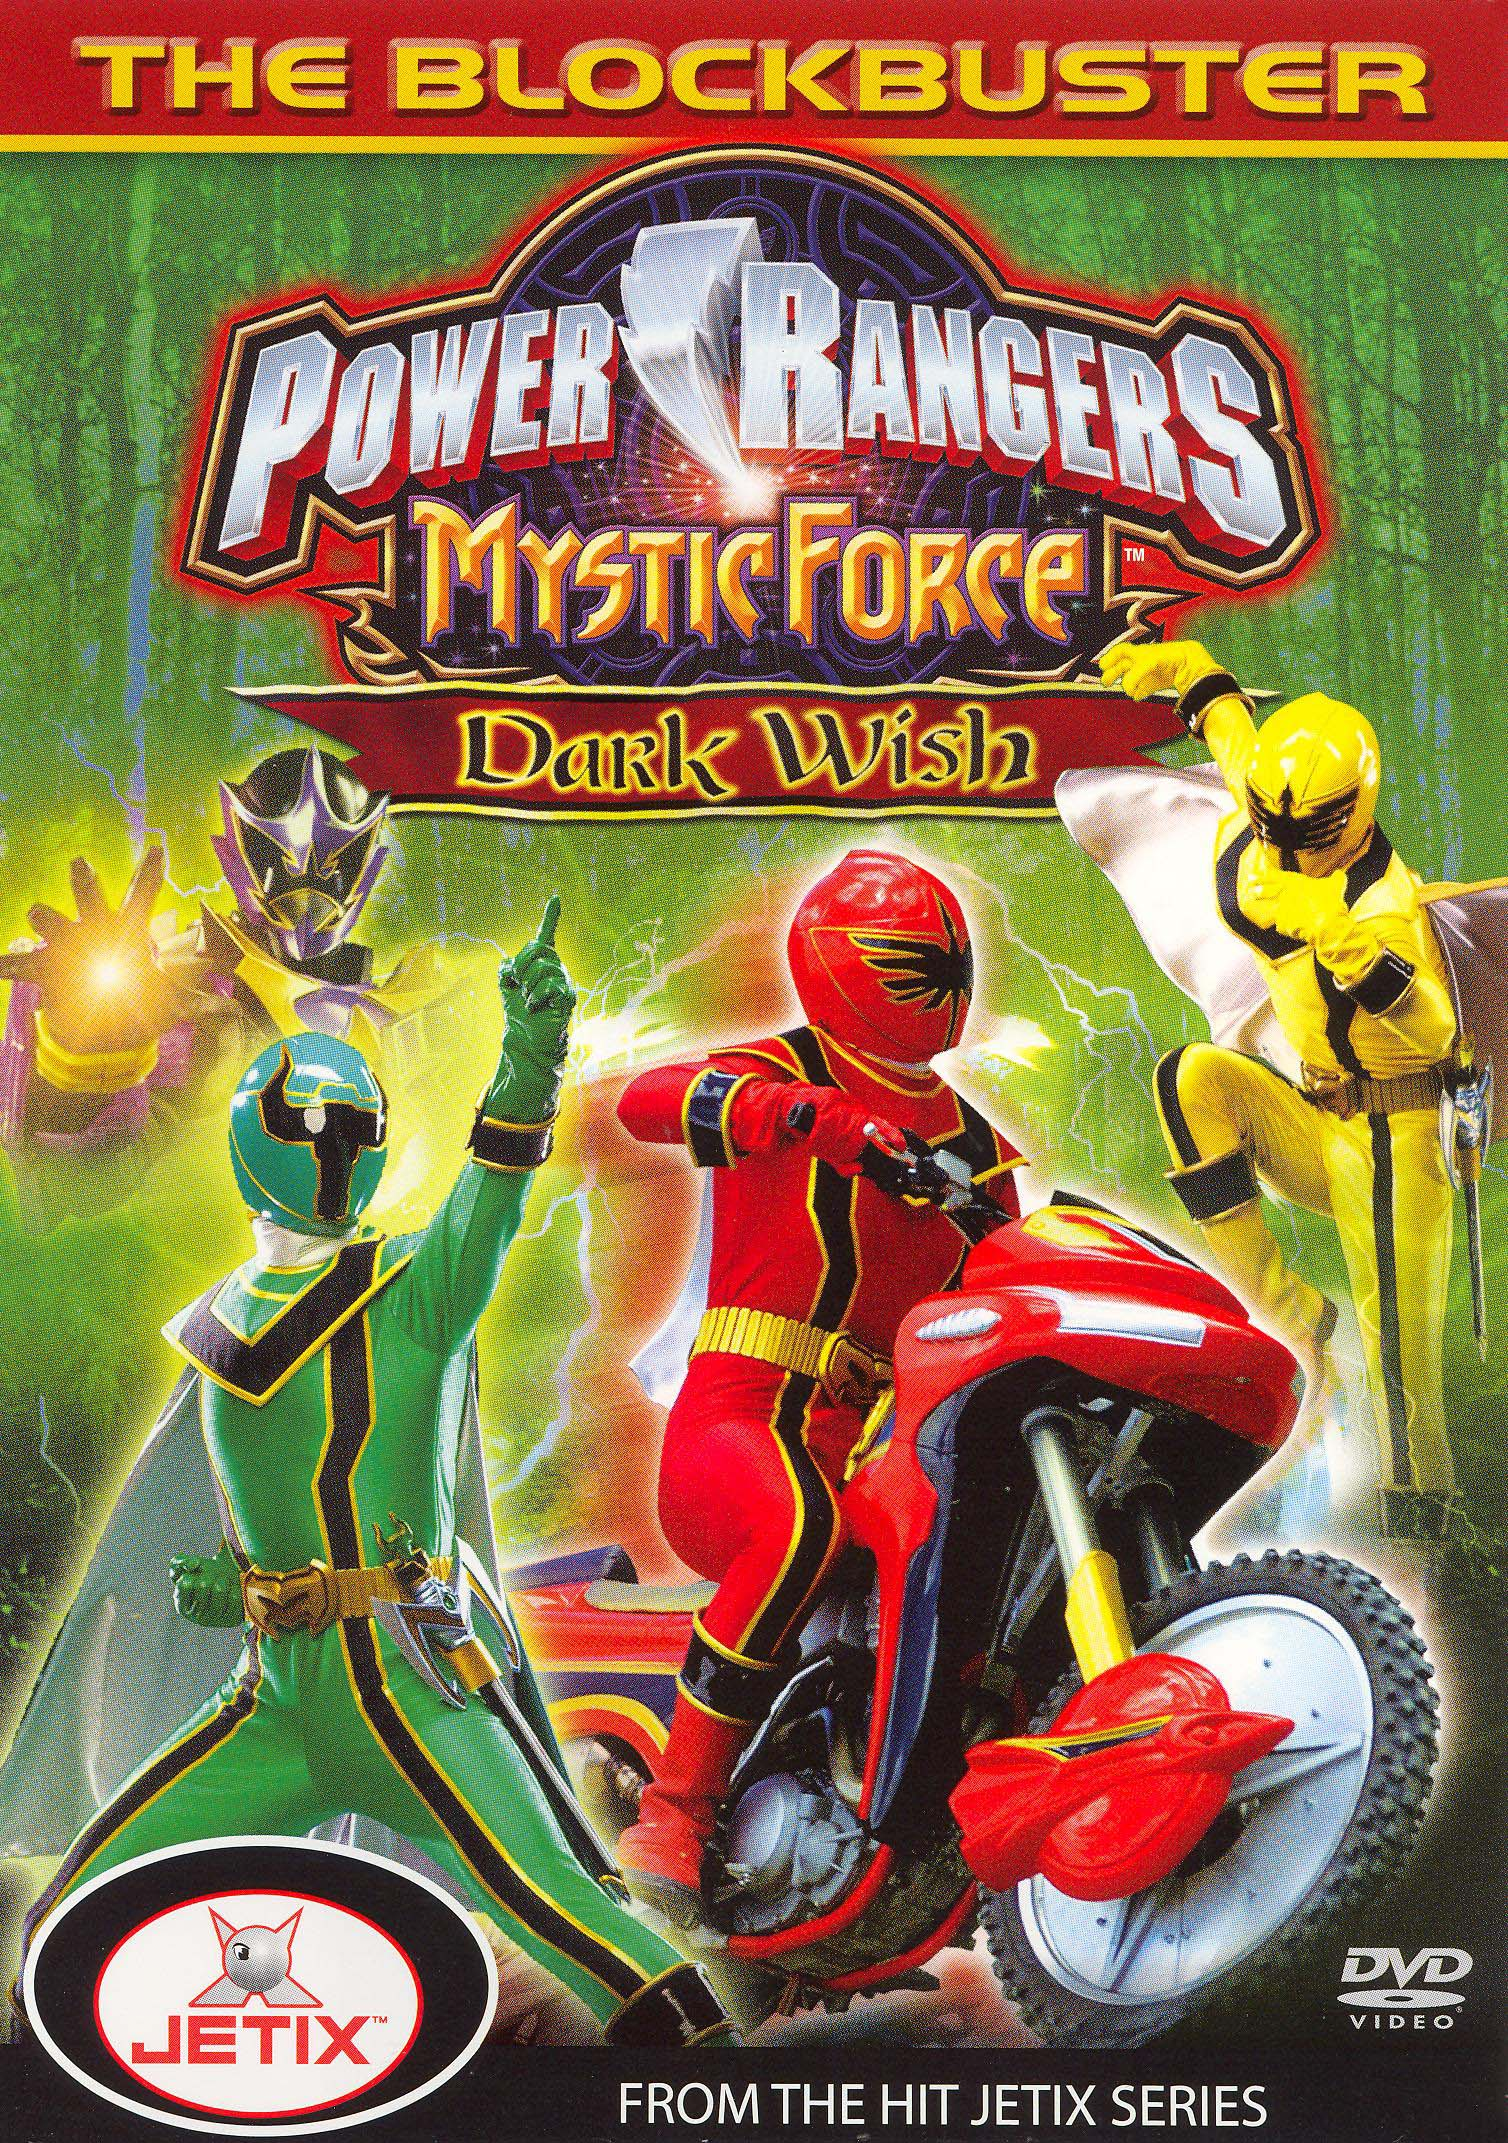 Power Rangers Mystic Force: Dark Wish - The Blockbuster